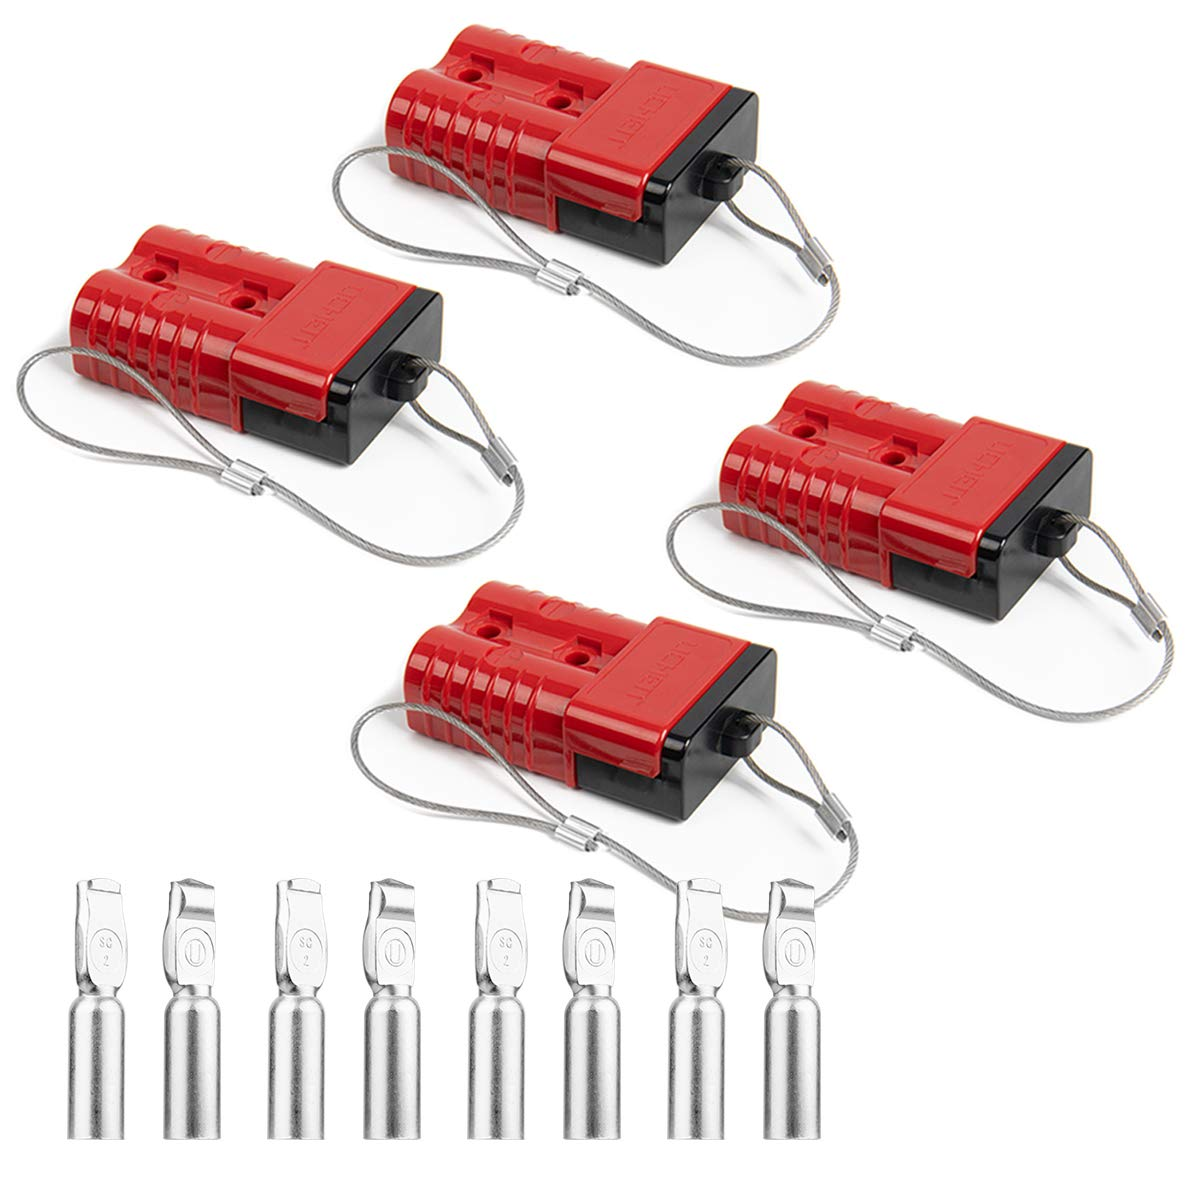 HYCLAT Red 2-4 Gauge 175 A Battery Quick Connect/Disconnect Wire Harness Plug Connector Recovery Winch Trailer (4 Pack)